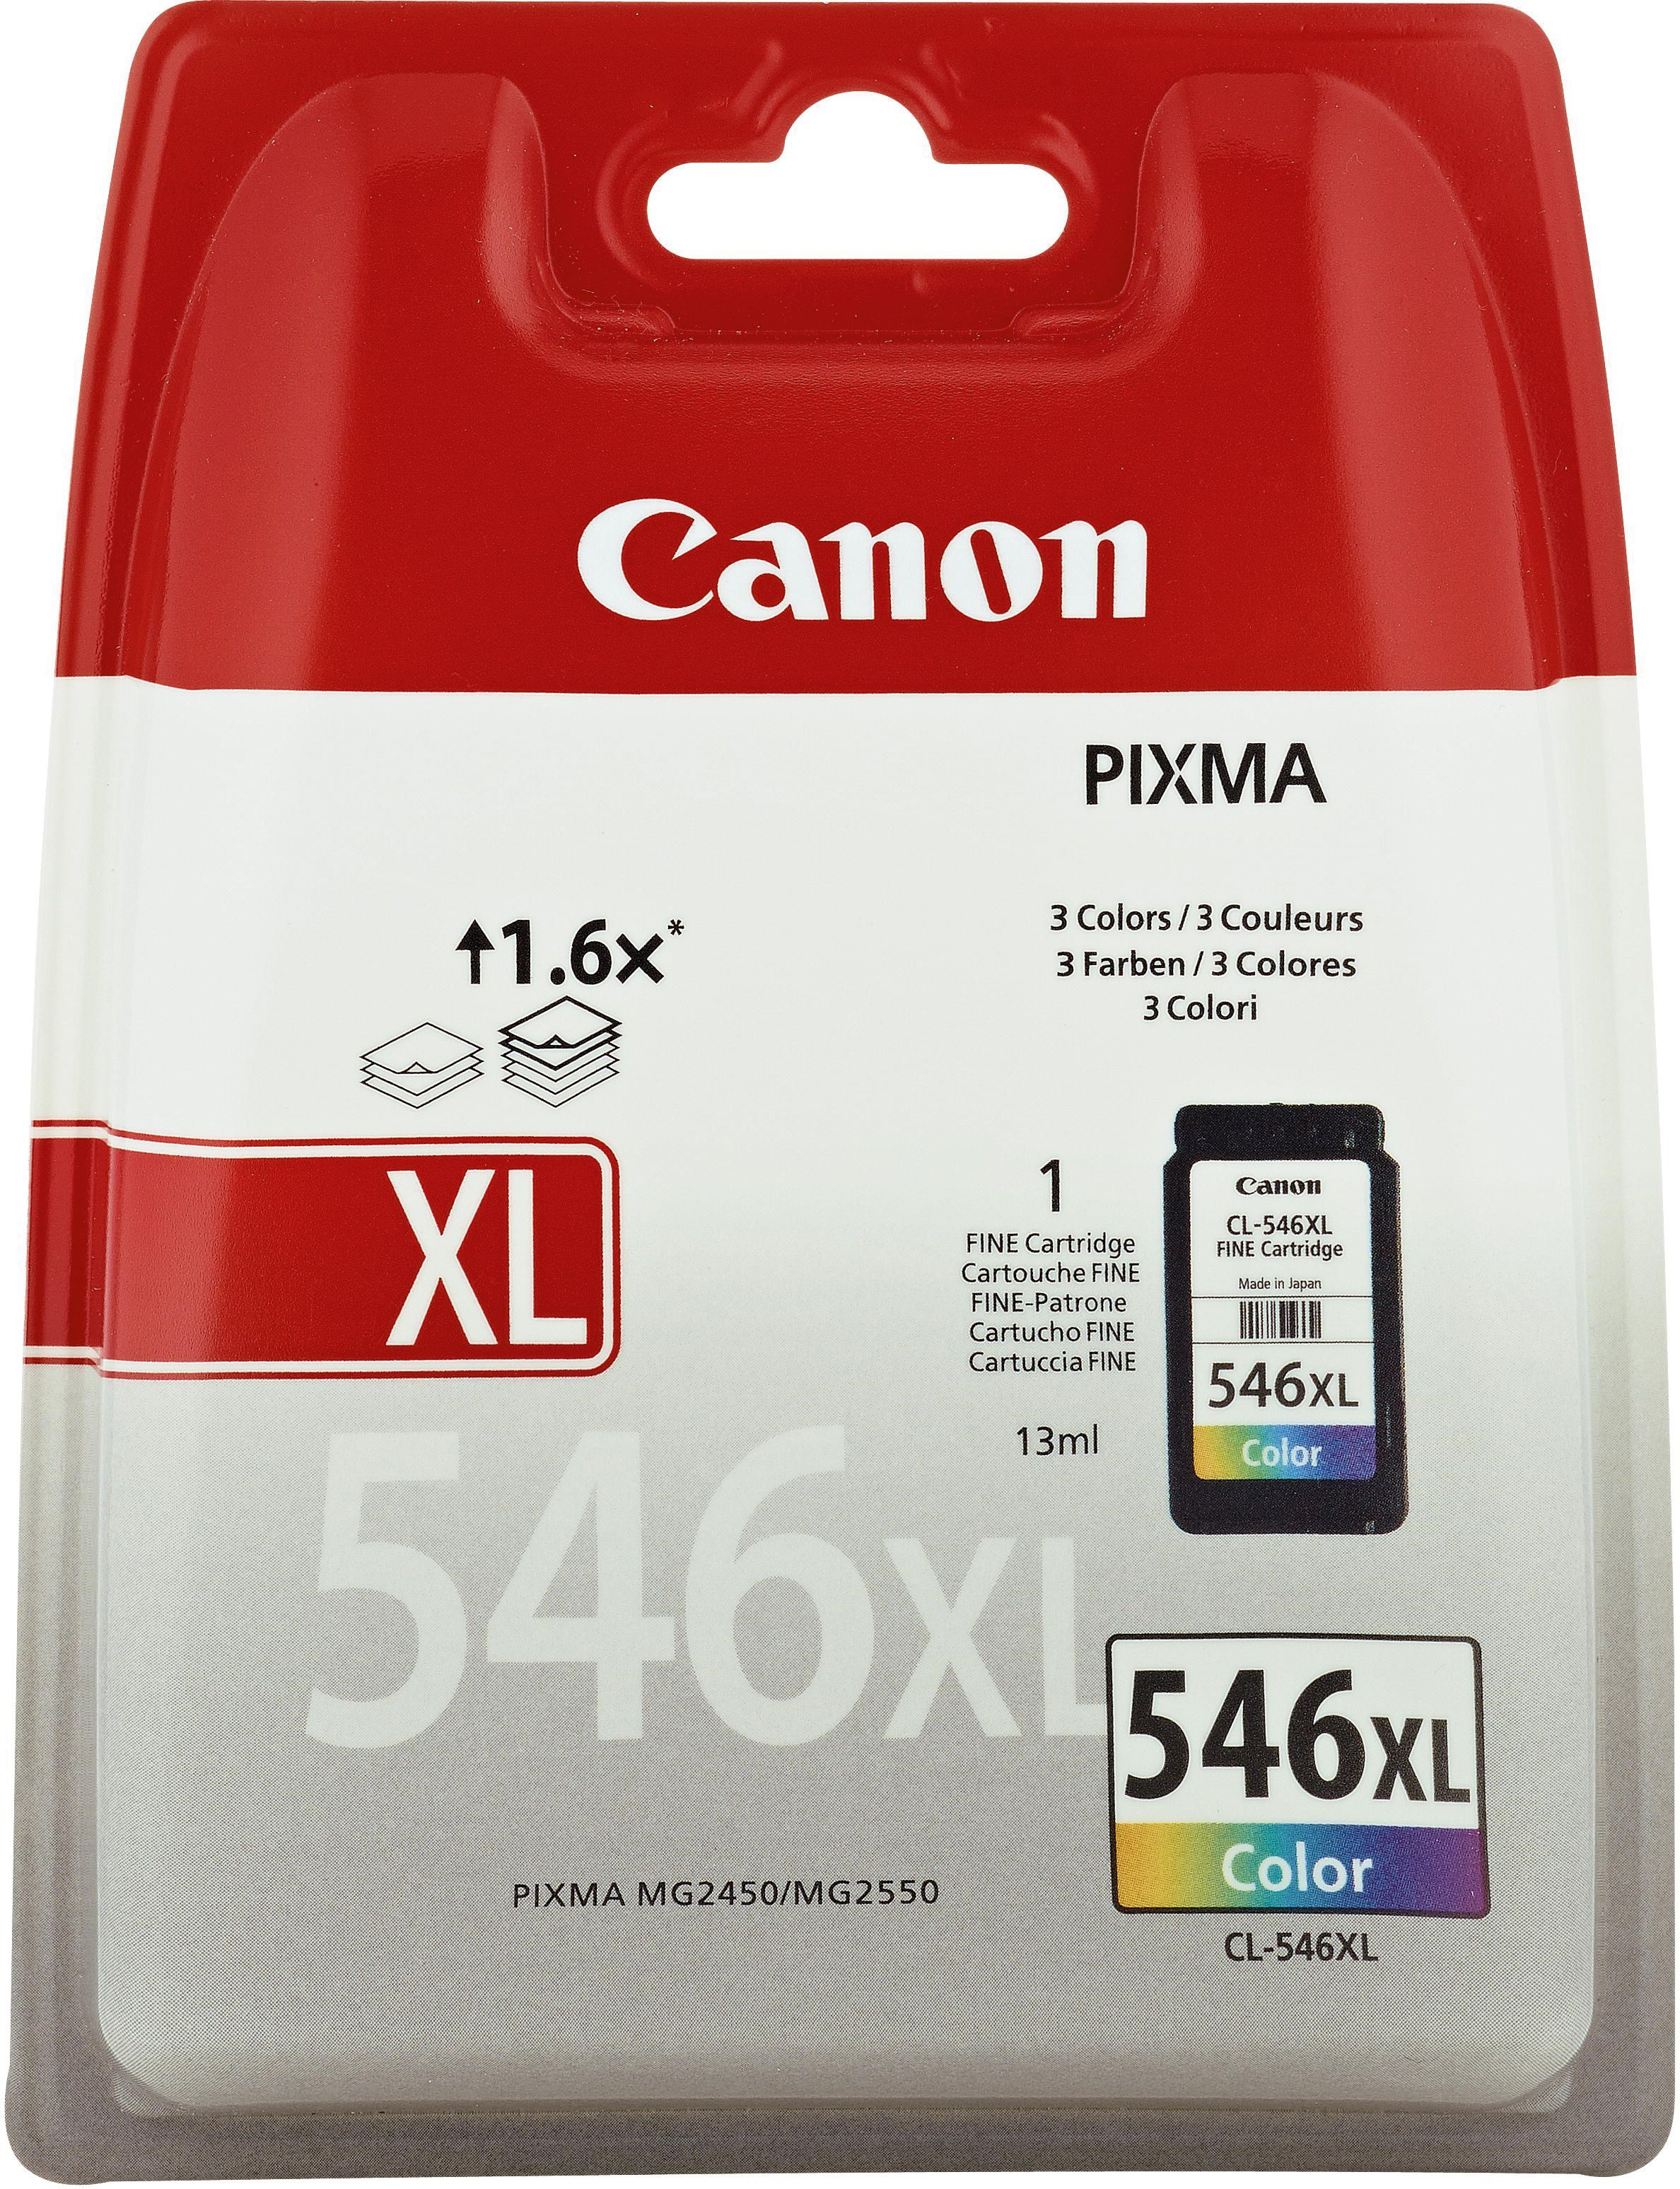 CL-546XL Cartucho de tinta color Canon (15ml.)